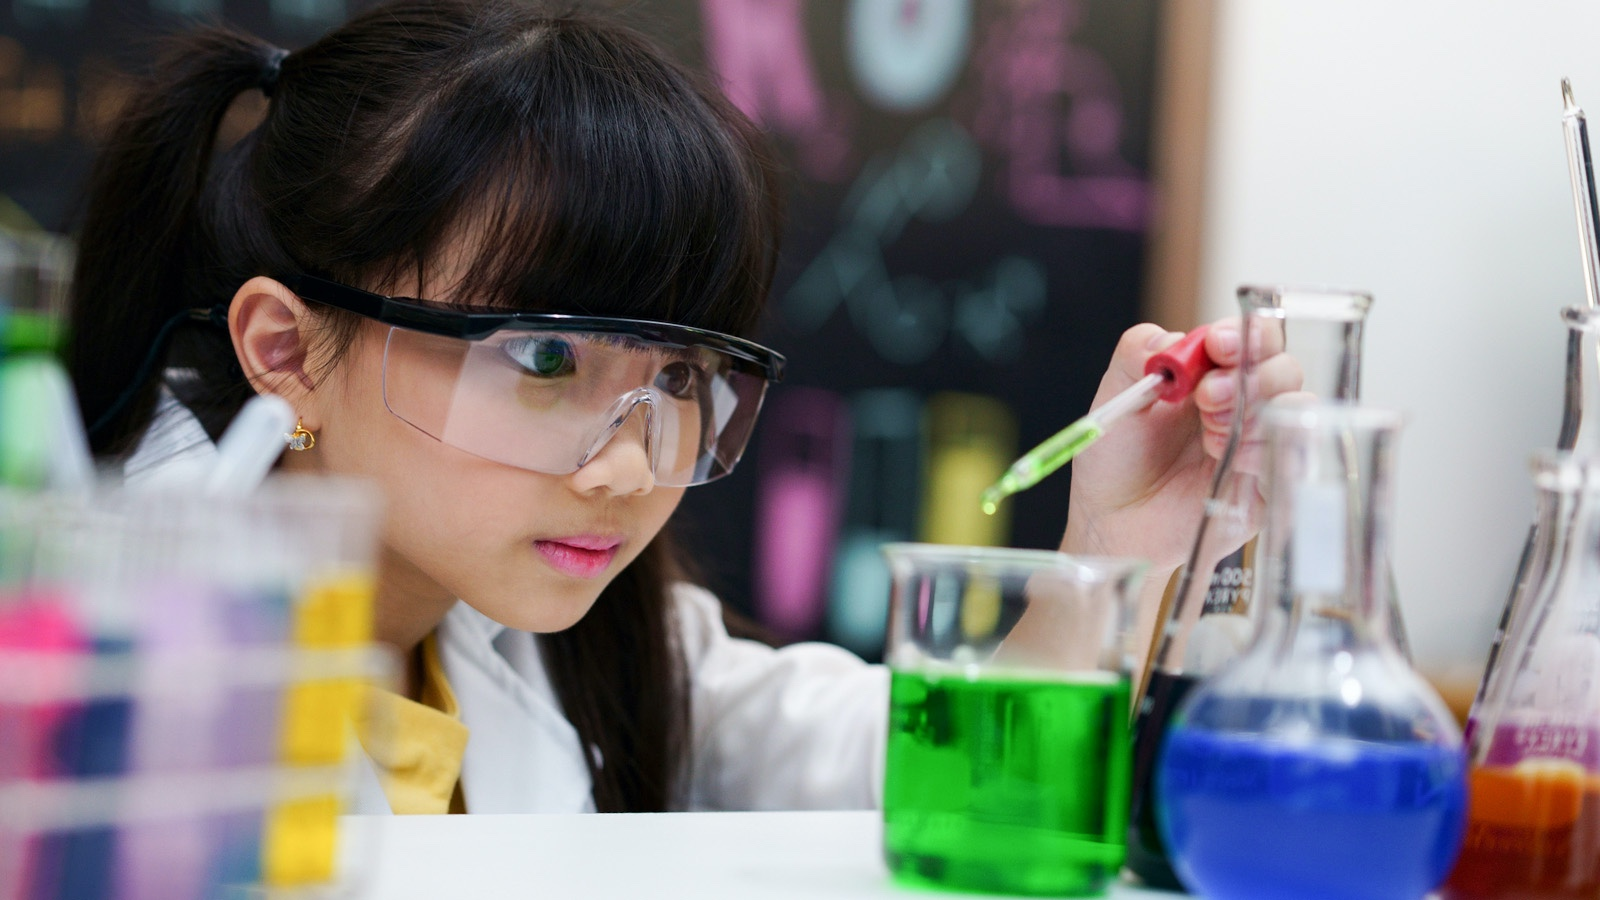 Student performing science experiment with variables